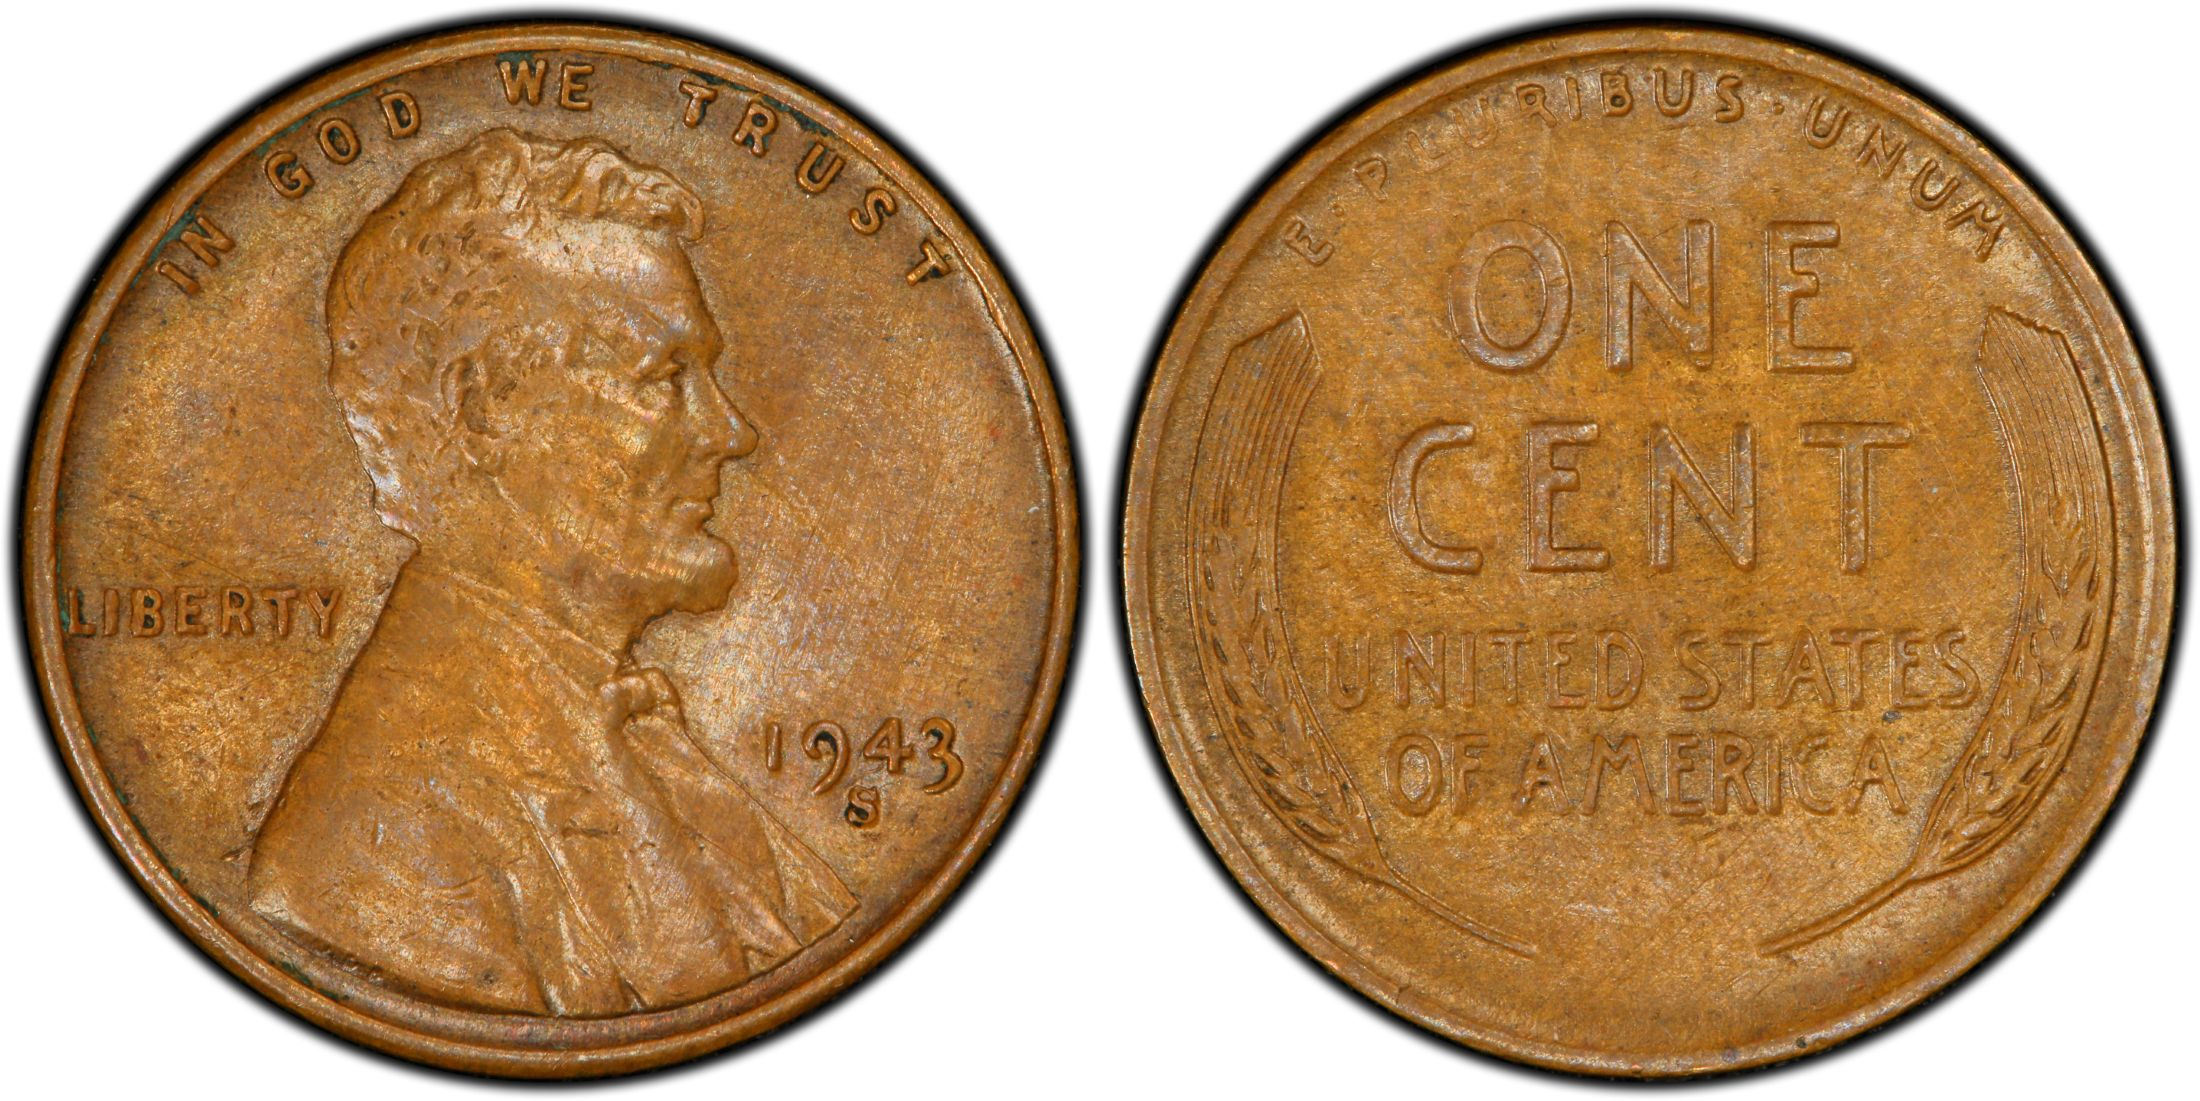 The finest known 1943-S Bronze Lincoln Cent was sold for one million dollars recently.